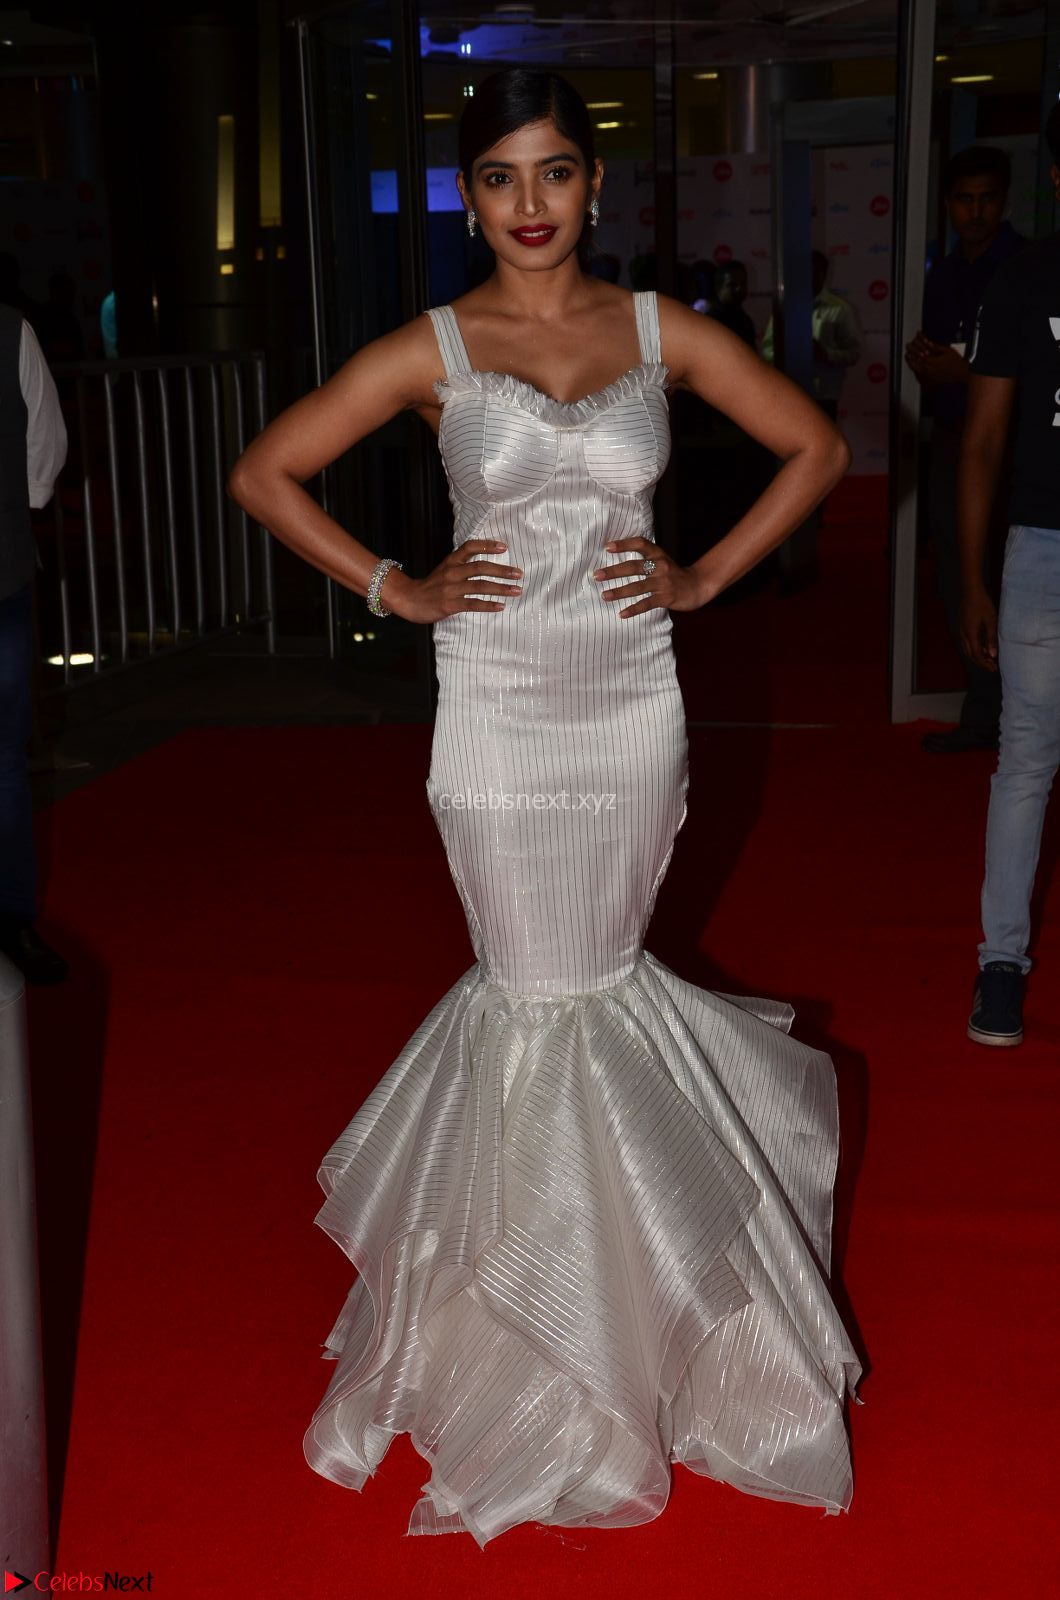 Sanchita Shetty in Deep neck Sleeveless White Gown Stunning Beauty at 64th Jio Filmfare Awards South 17th June 2017 ~ CelebsNext Exclusive